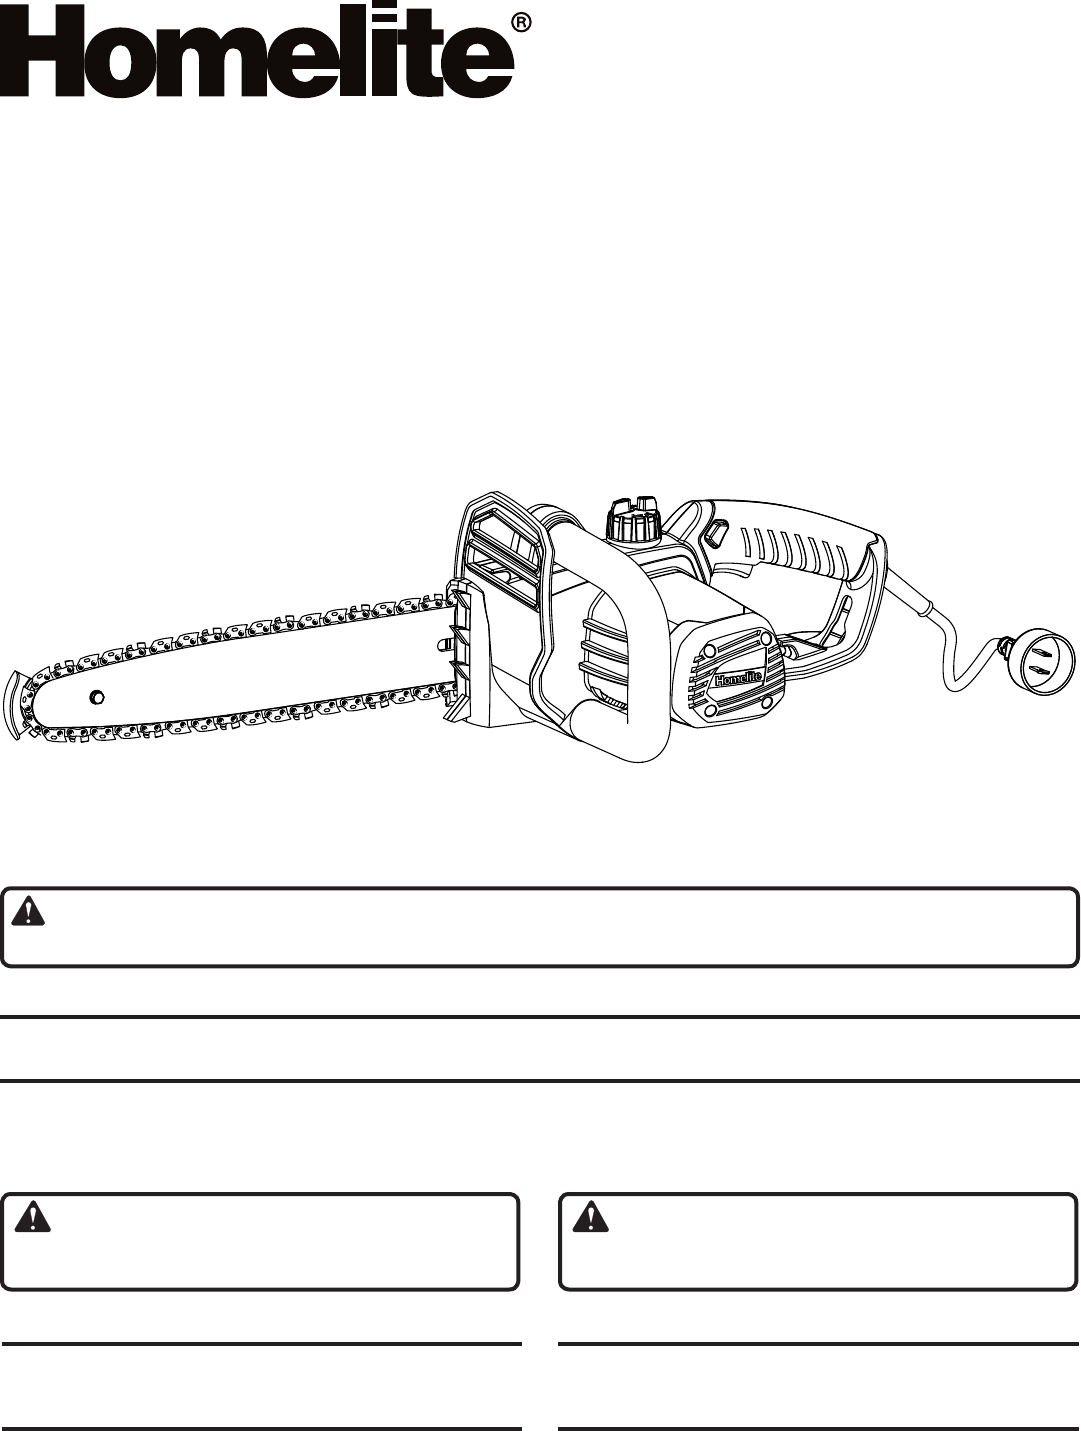 Homelite Chainsaw Ut43103 User Guide Manualsonlinecom Lawn Mower Wiring Diagram Save This Manual For Future Reference